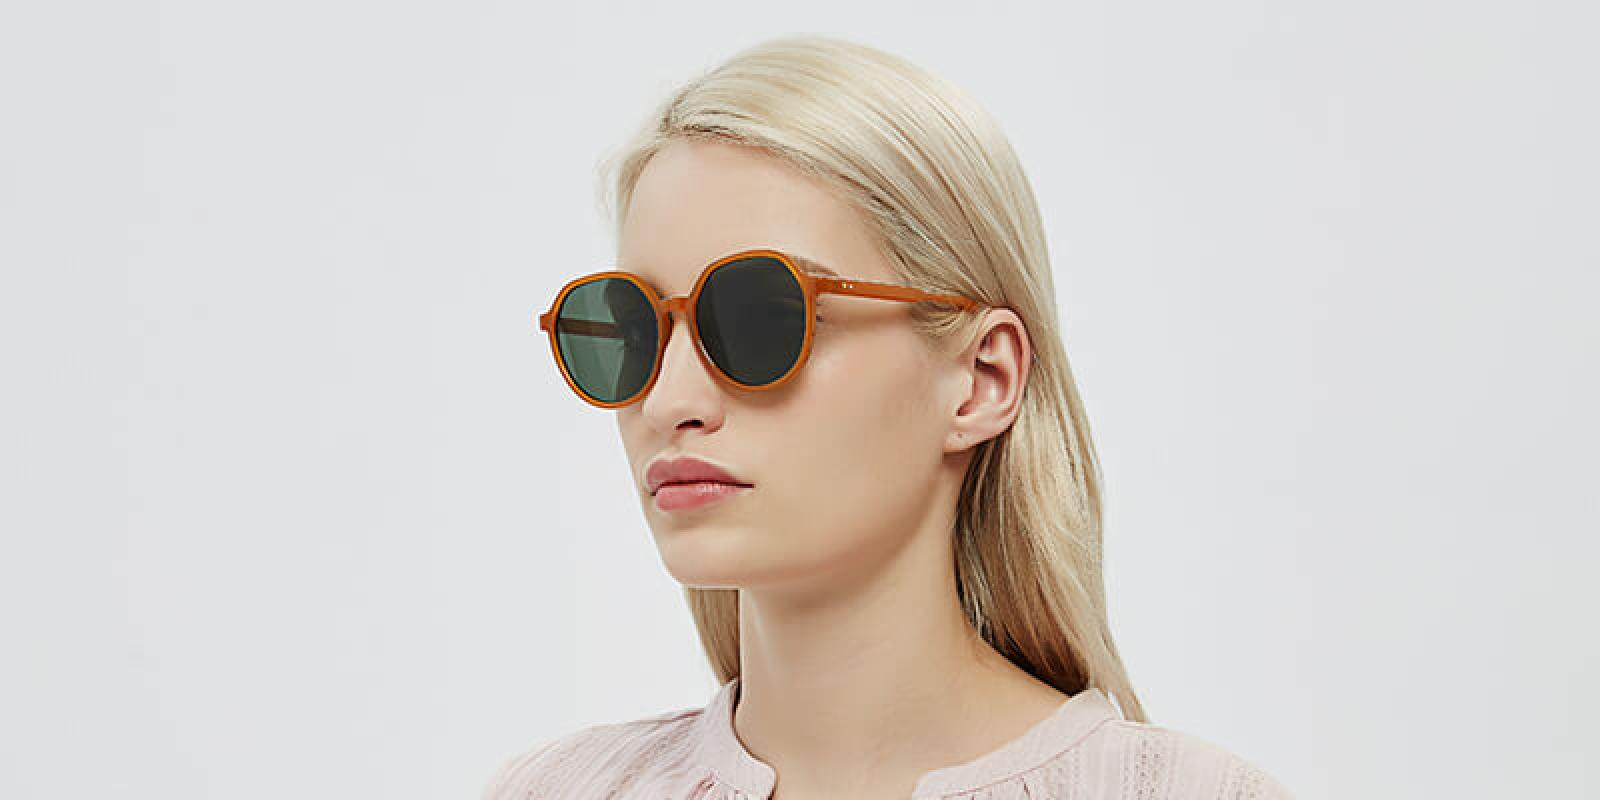 Songi-Translucent-TR-Sunglasses-detail2